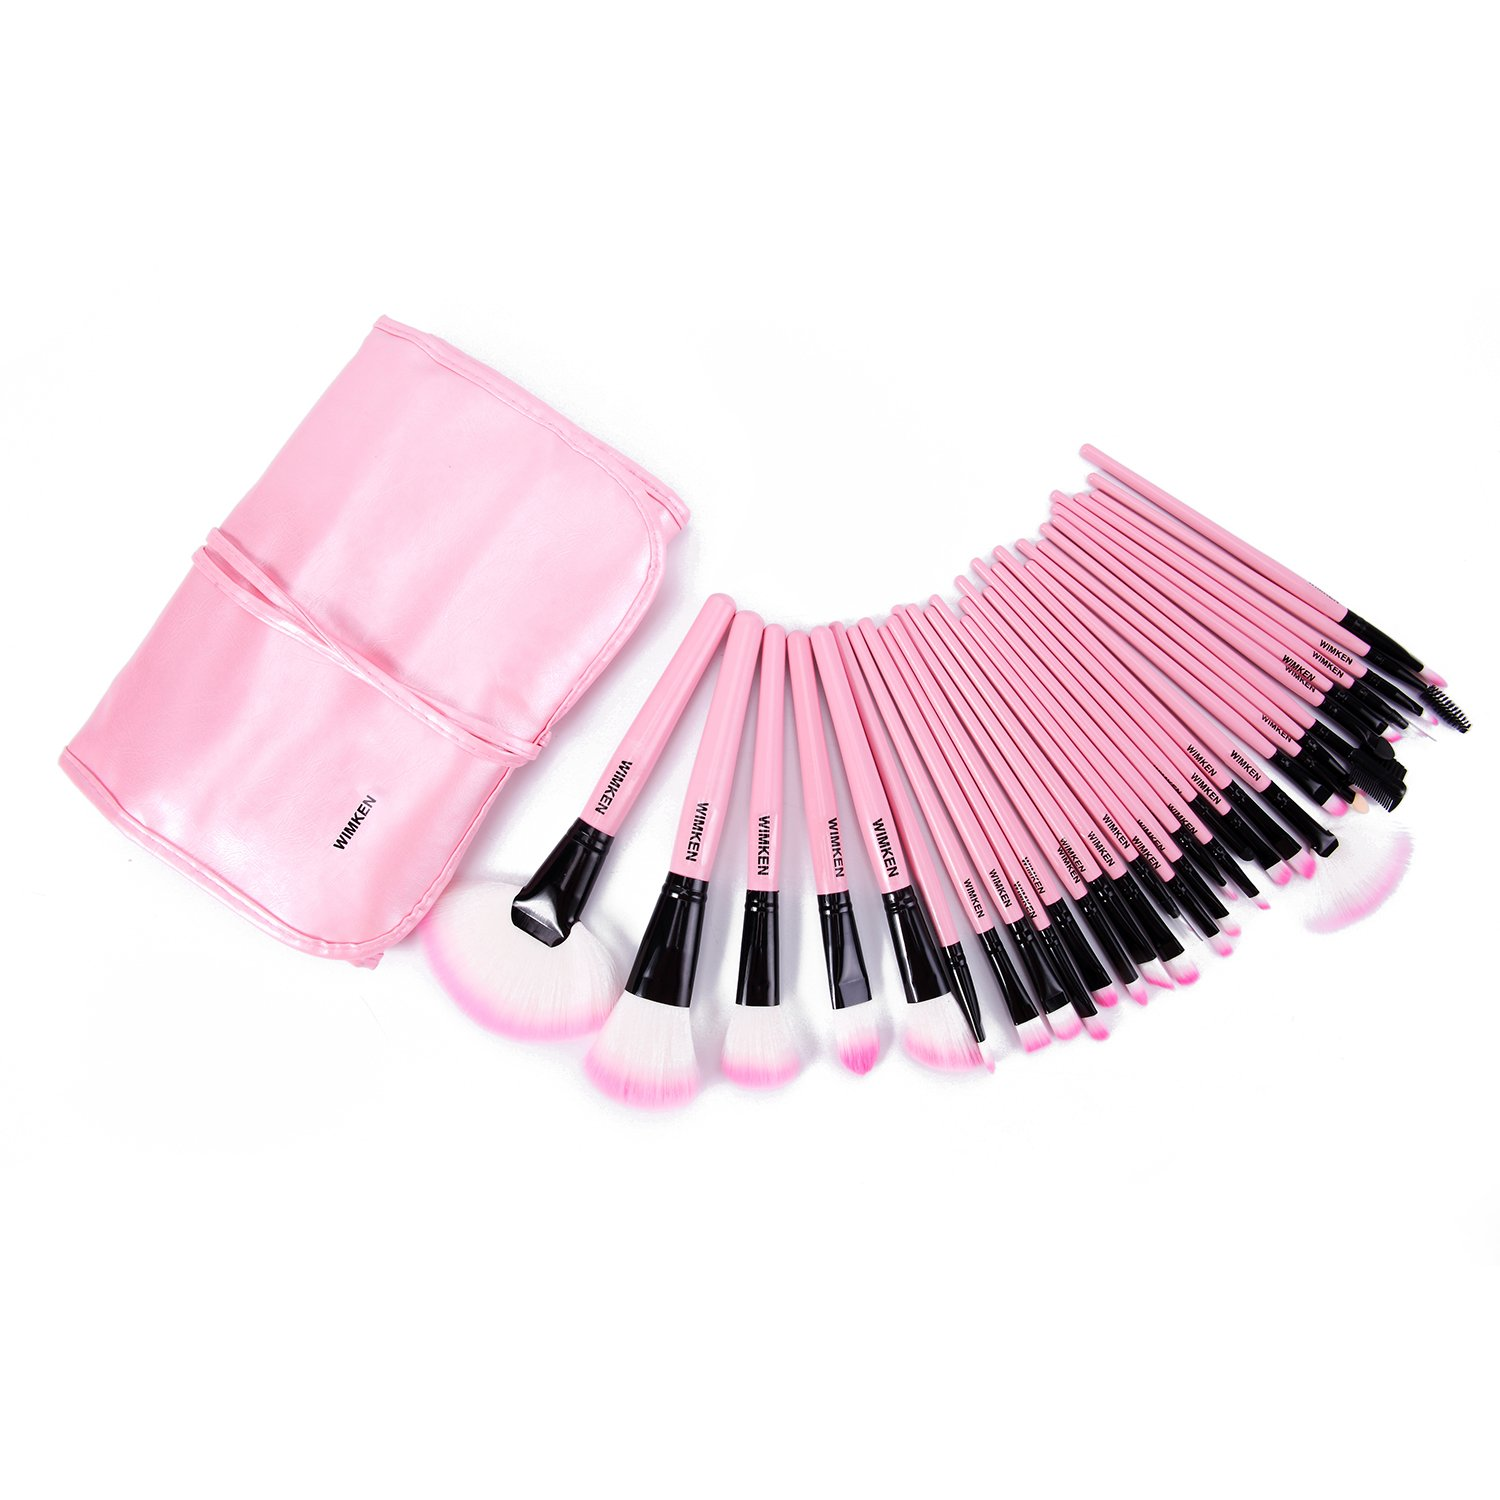 Make up for you Brand Professional Superior Soft Cosmetic Makeup Brush Set Kit Women Pink 32 Pcs Makeup Sets + Pouch Bag Case WIMKEN